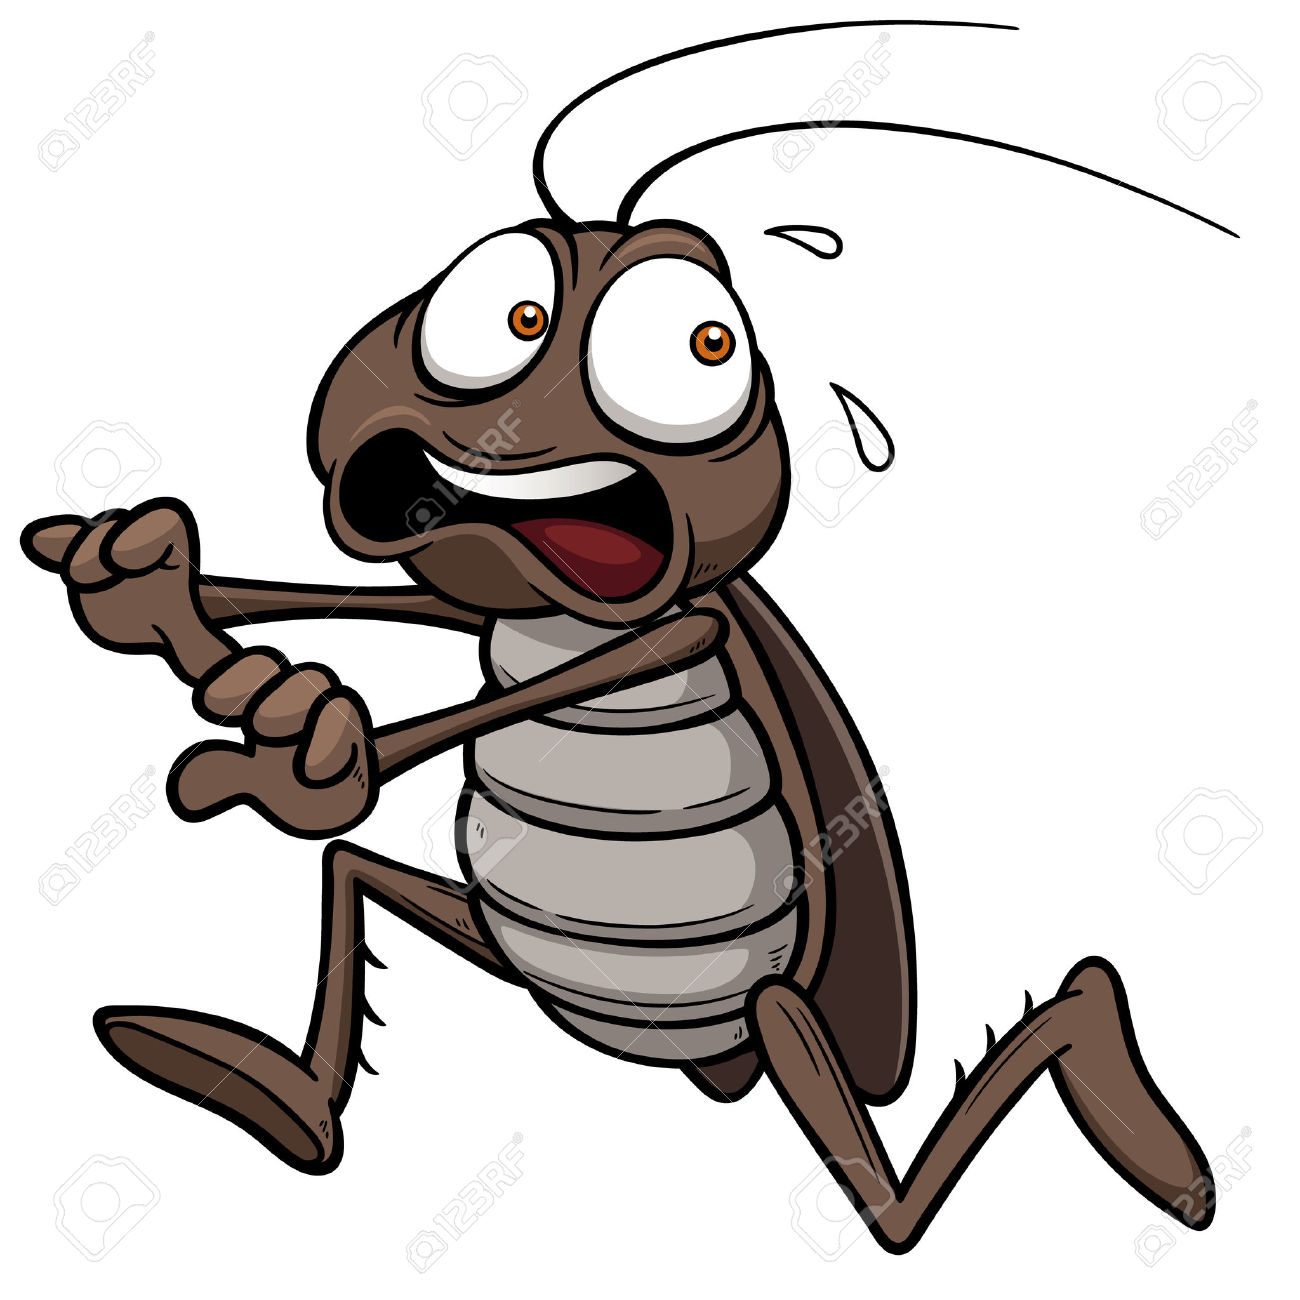 Cockroach clipart #10, Download drawings